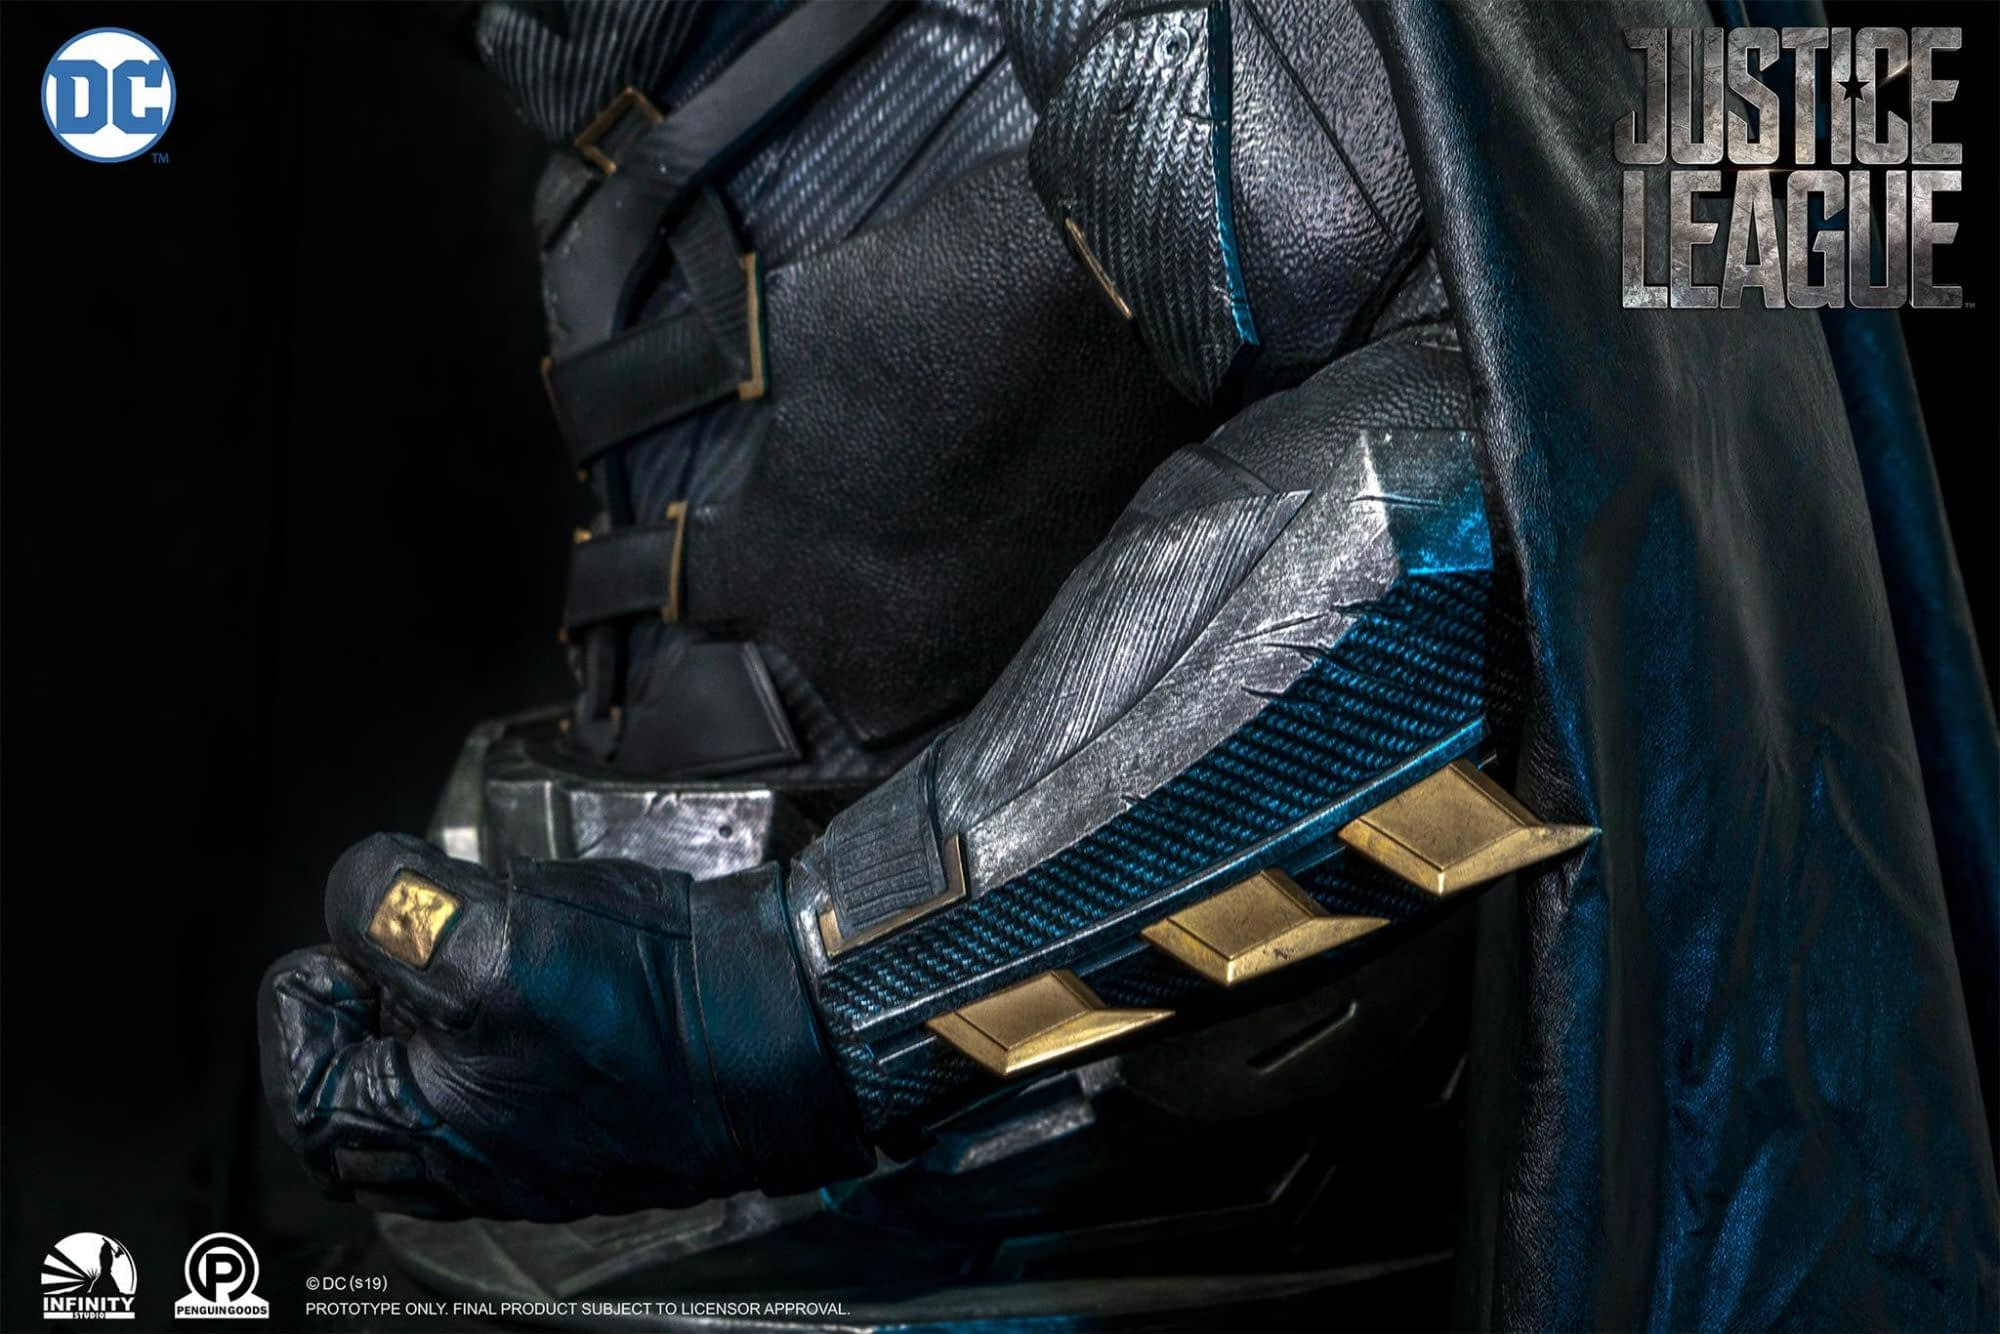 Batman Gets a Life-Size Bust for His Tactical Suit from Infinity Studio